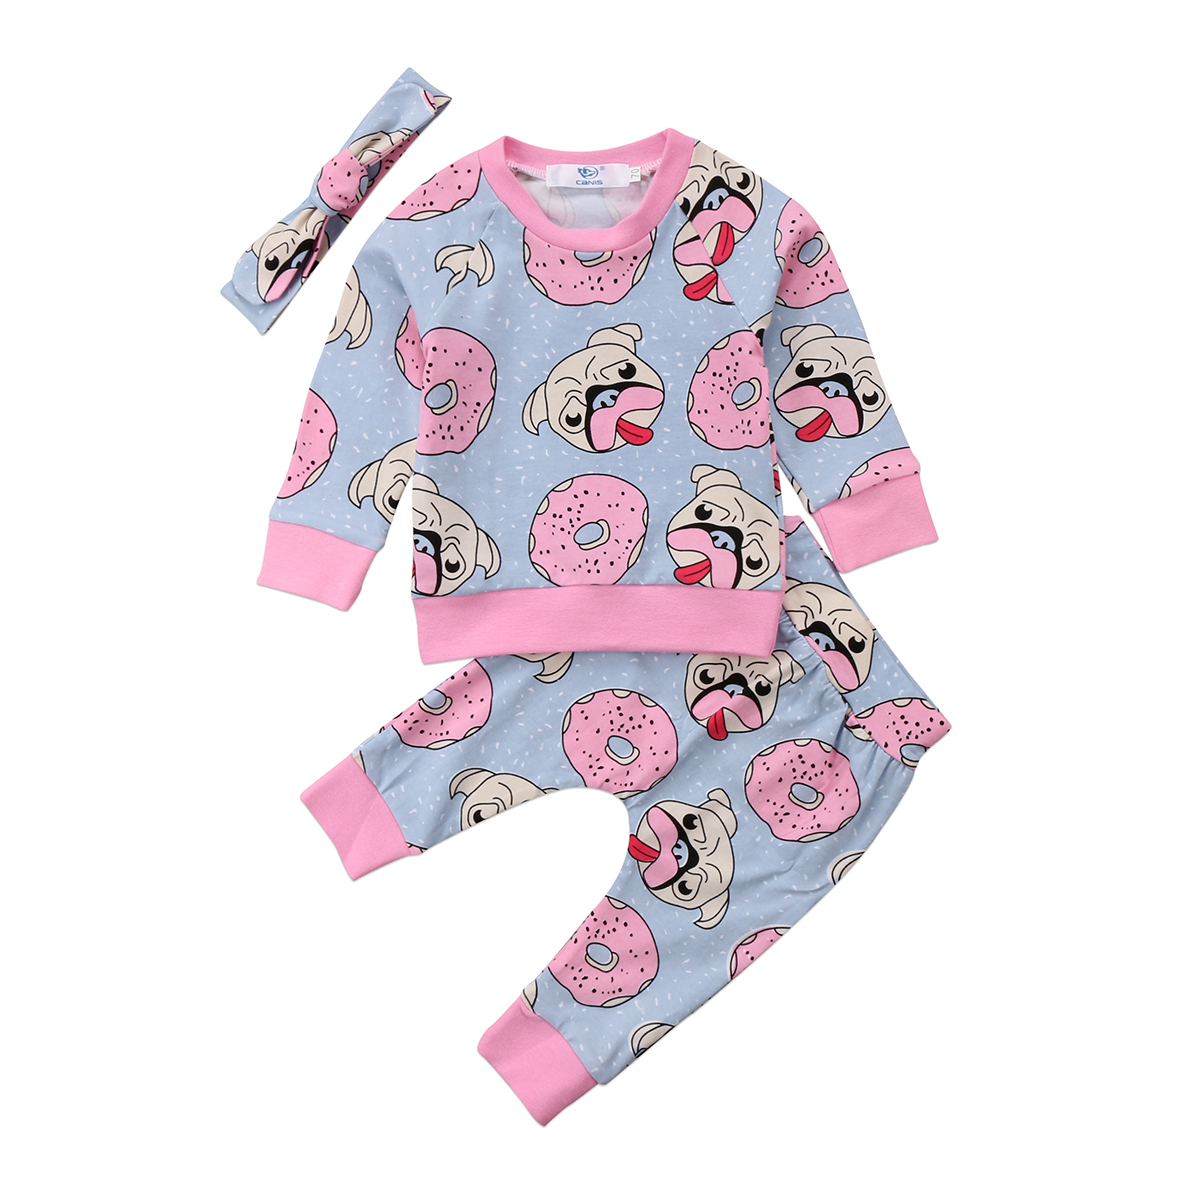 3PCS Pudcoco HOT Sale Newborn Baby Girl Cotton Cute Dog Long Sleeve Tops+Pants+Headband Clothes Set 0-24M